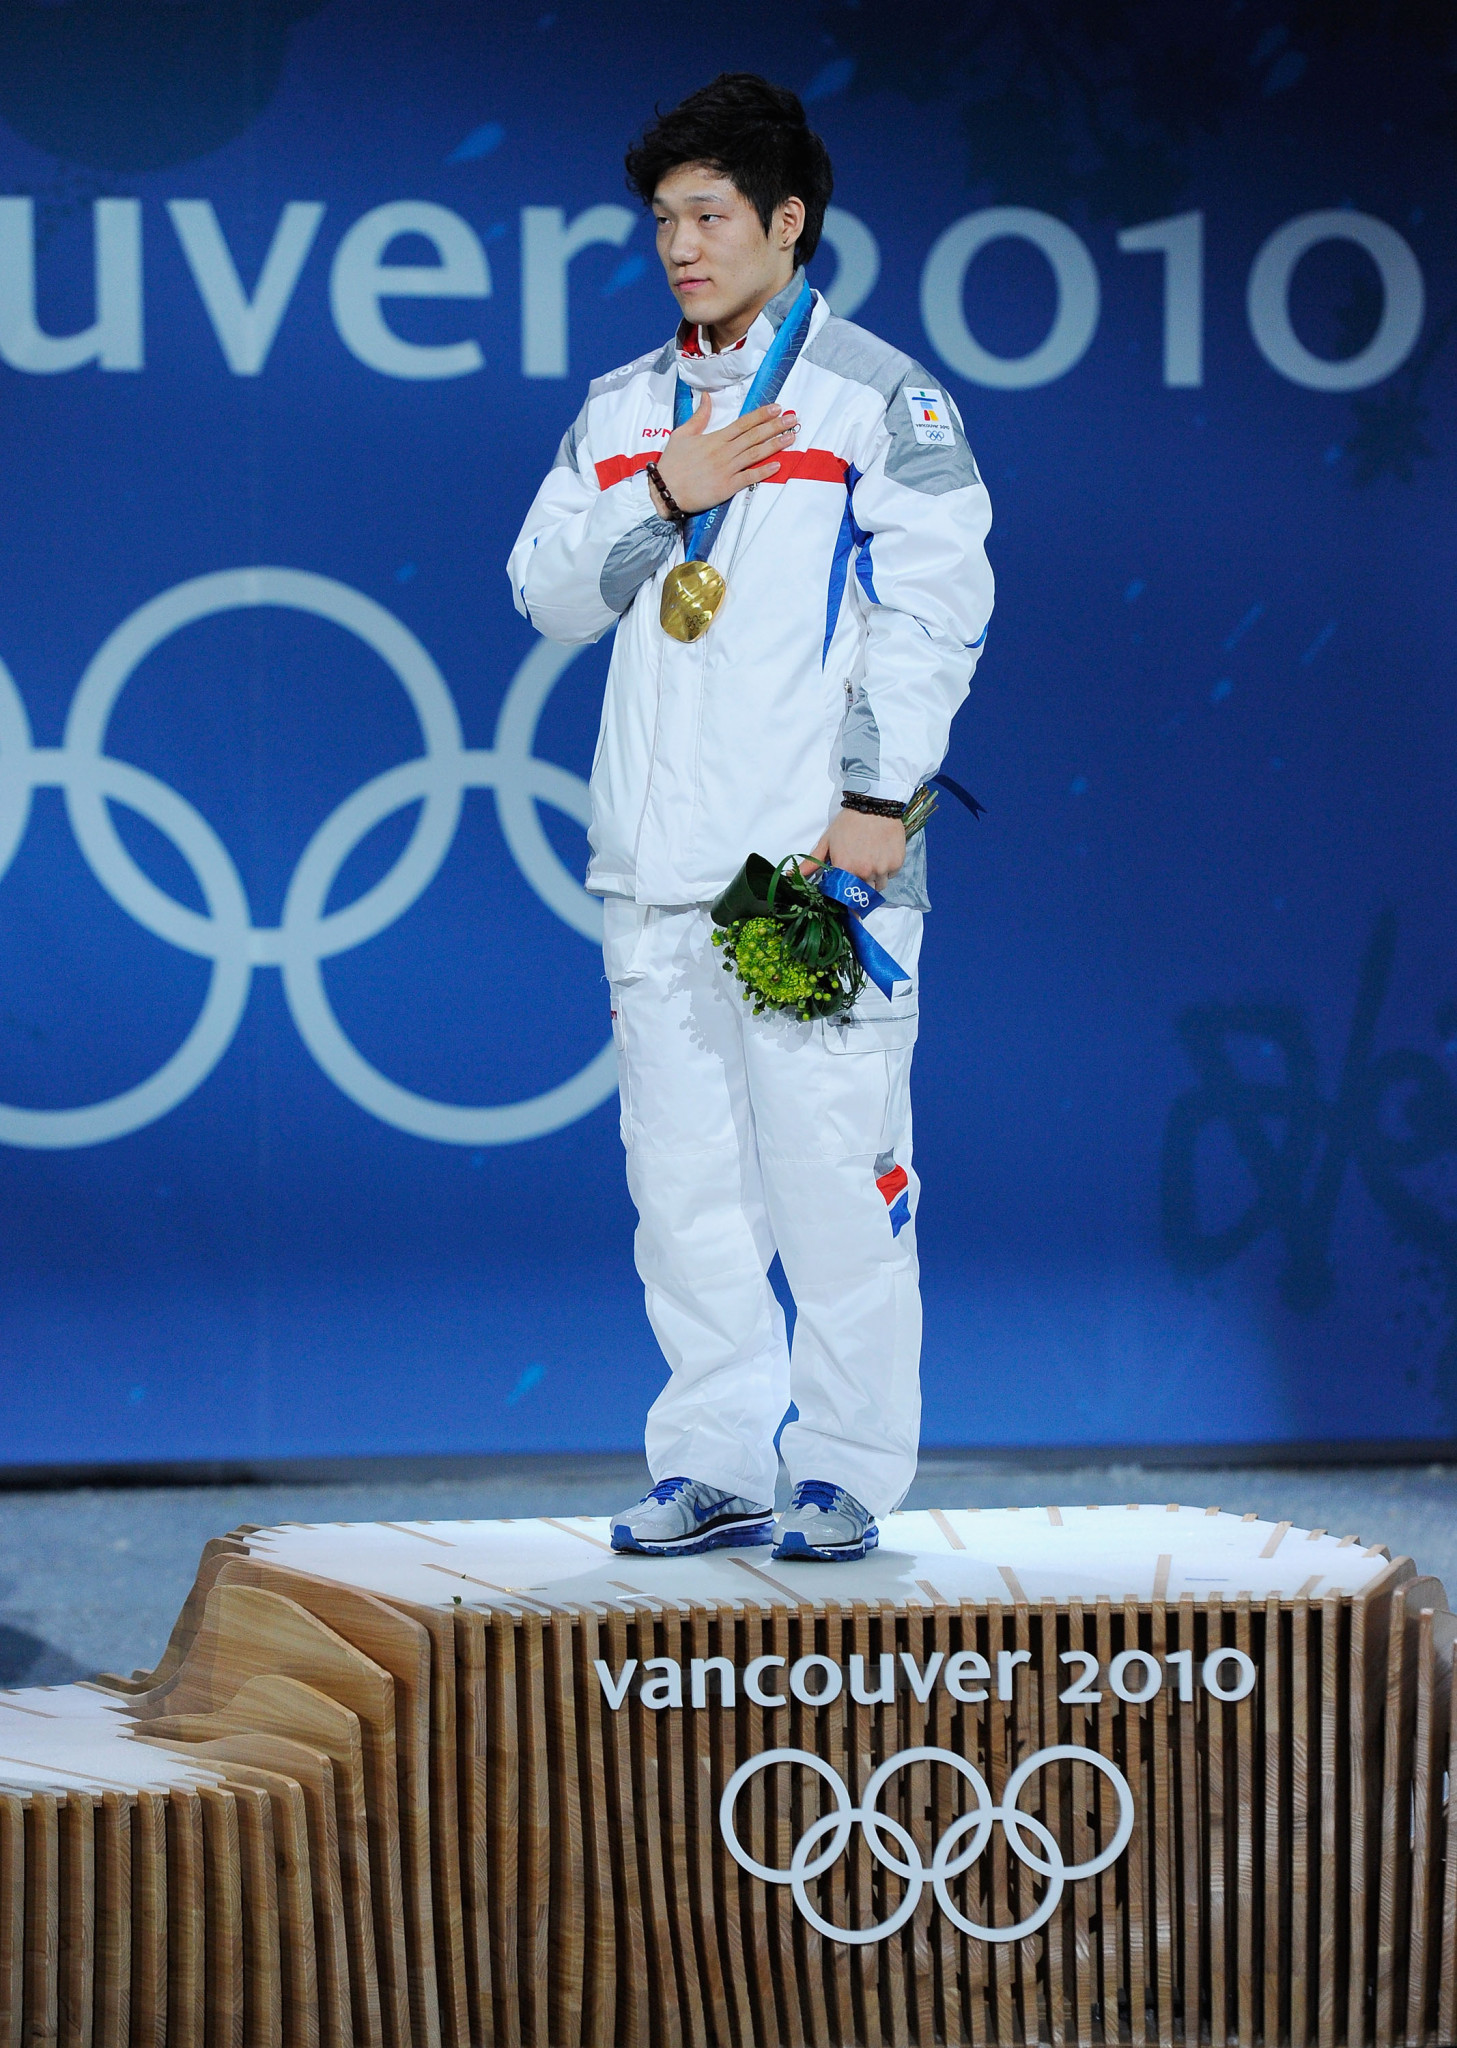 Moe Tae-bum won a shock gold medal at Vancouver 2010 ©Getty Images